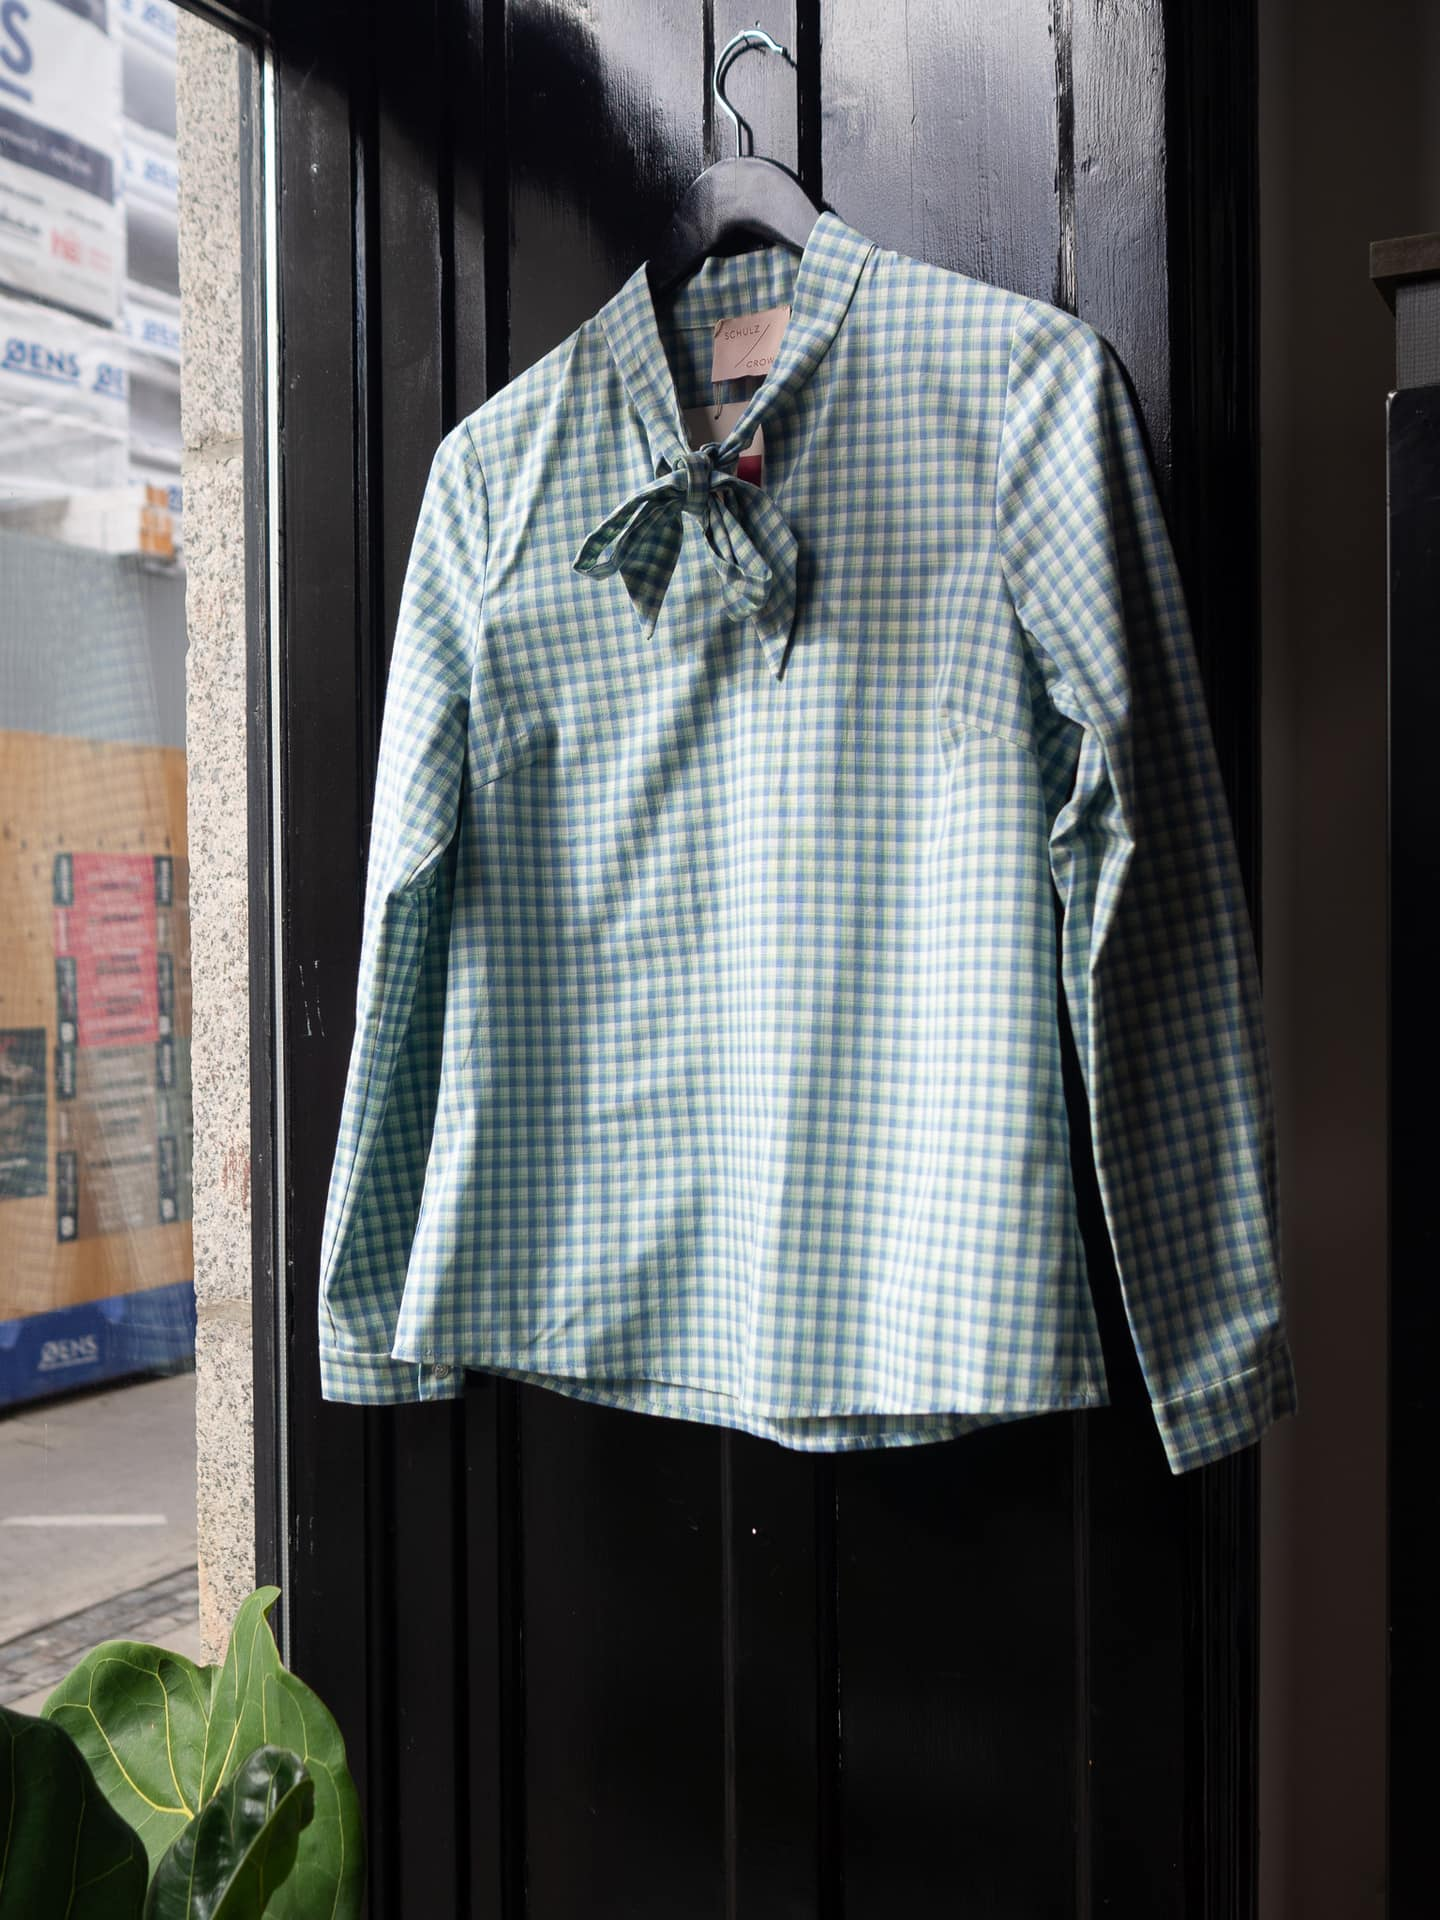 Berta blouse bluegreen checkered